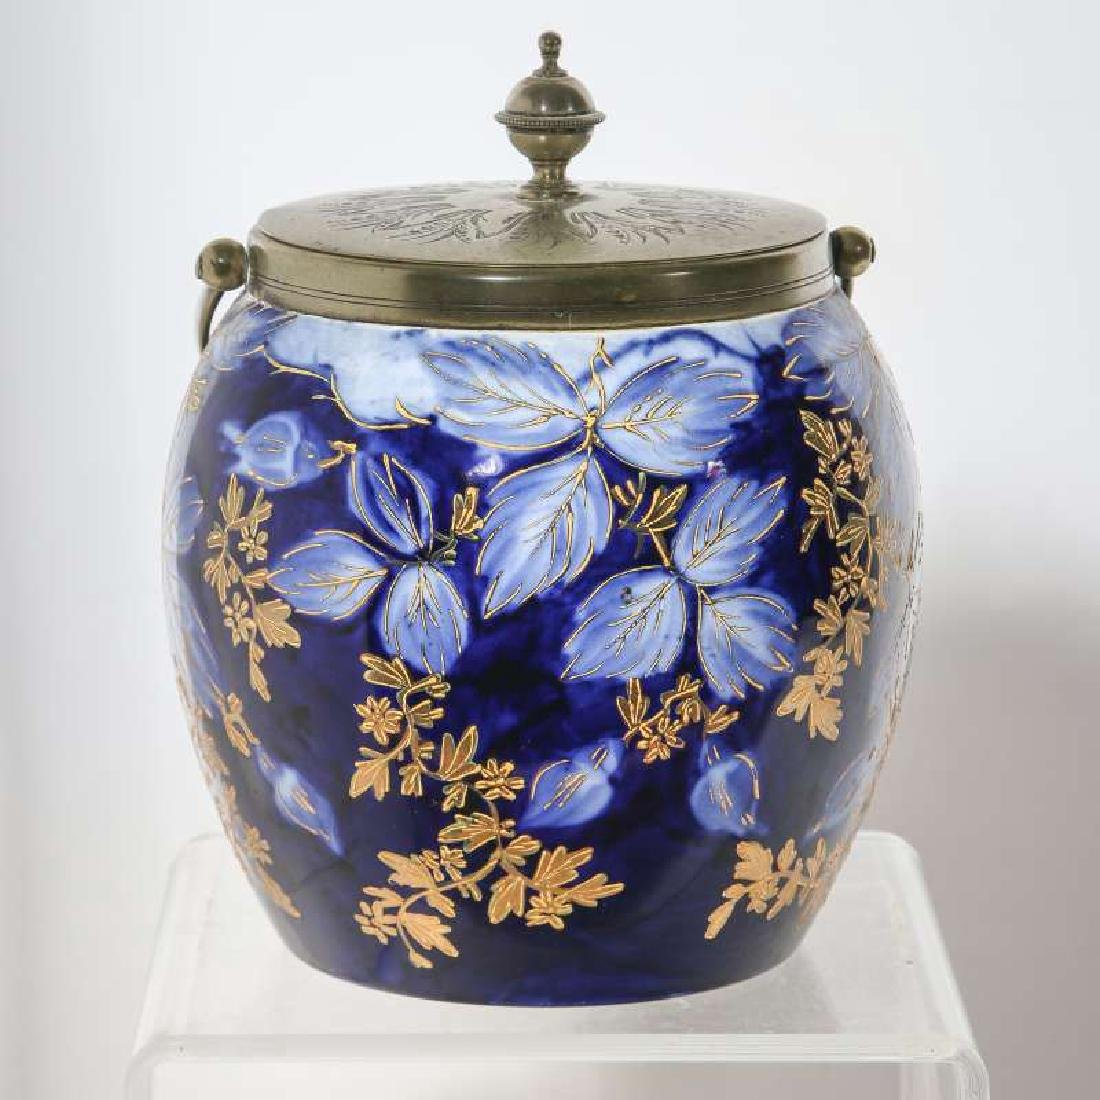 A GOOD FLOW BLUE BISCUIT JAR CIRCA 1890